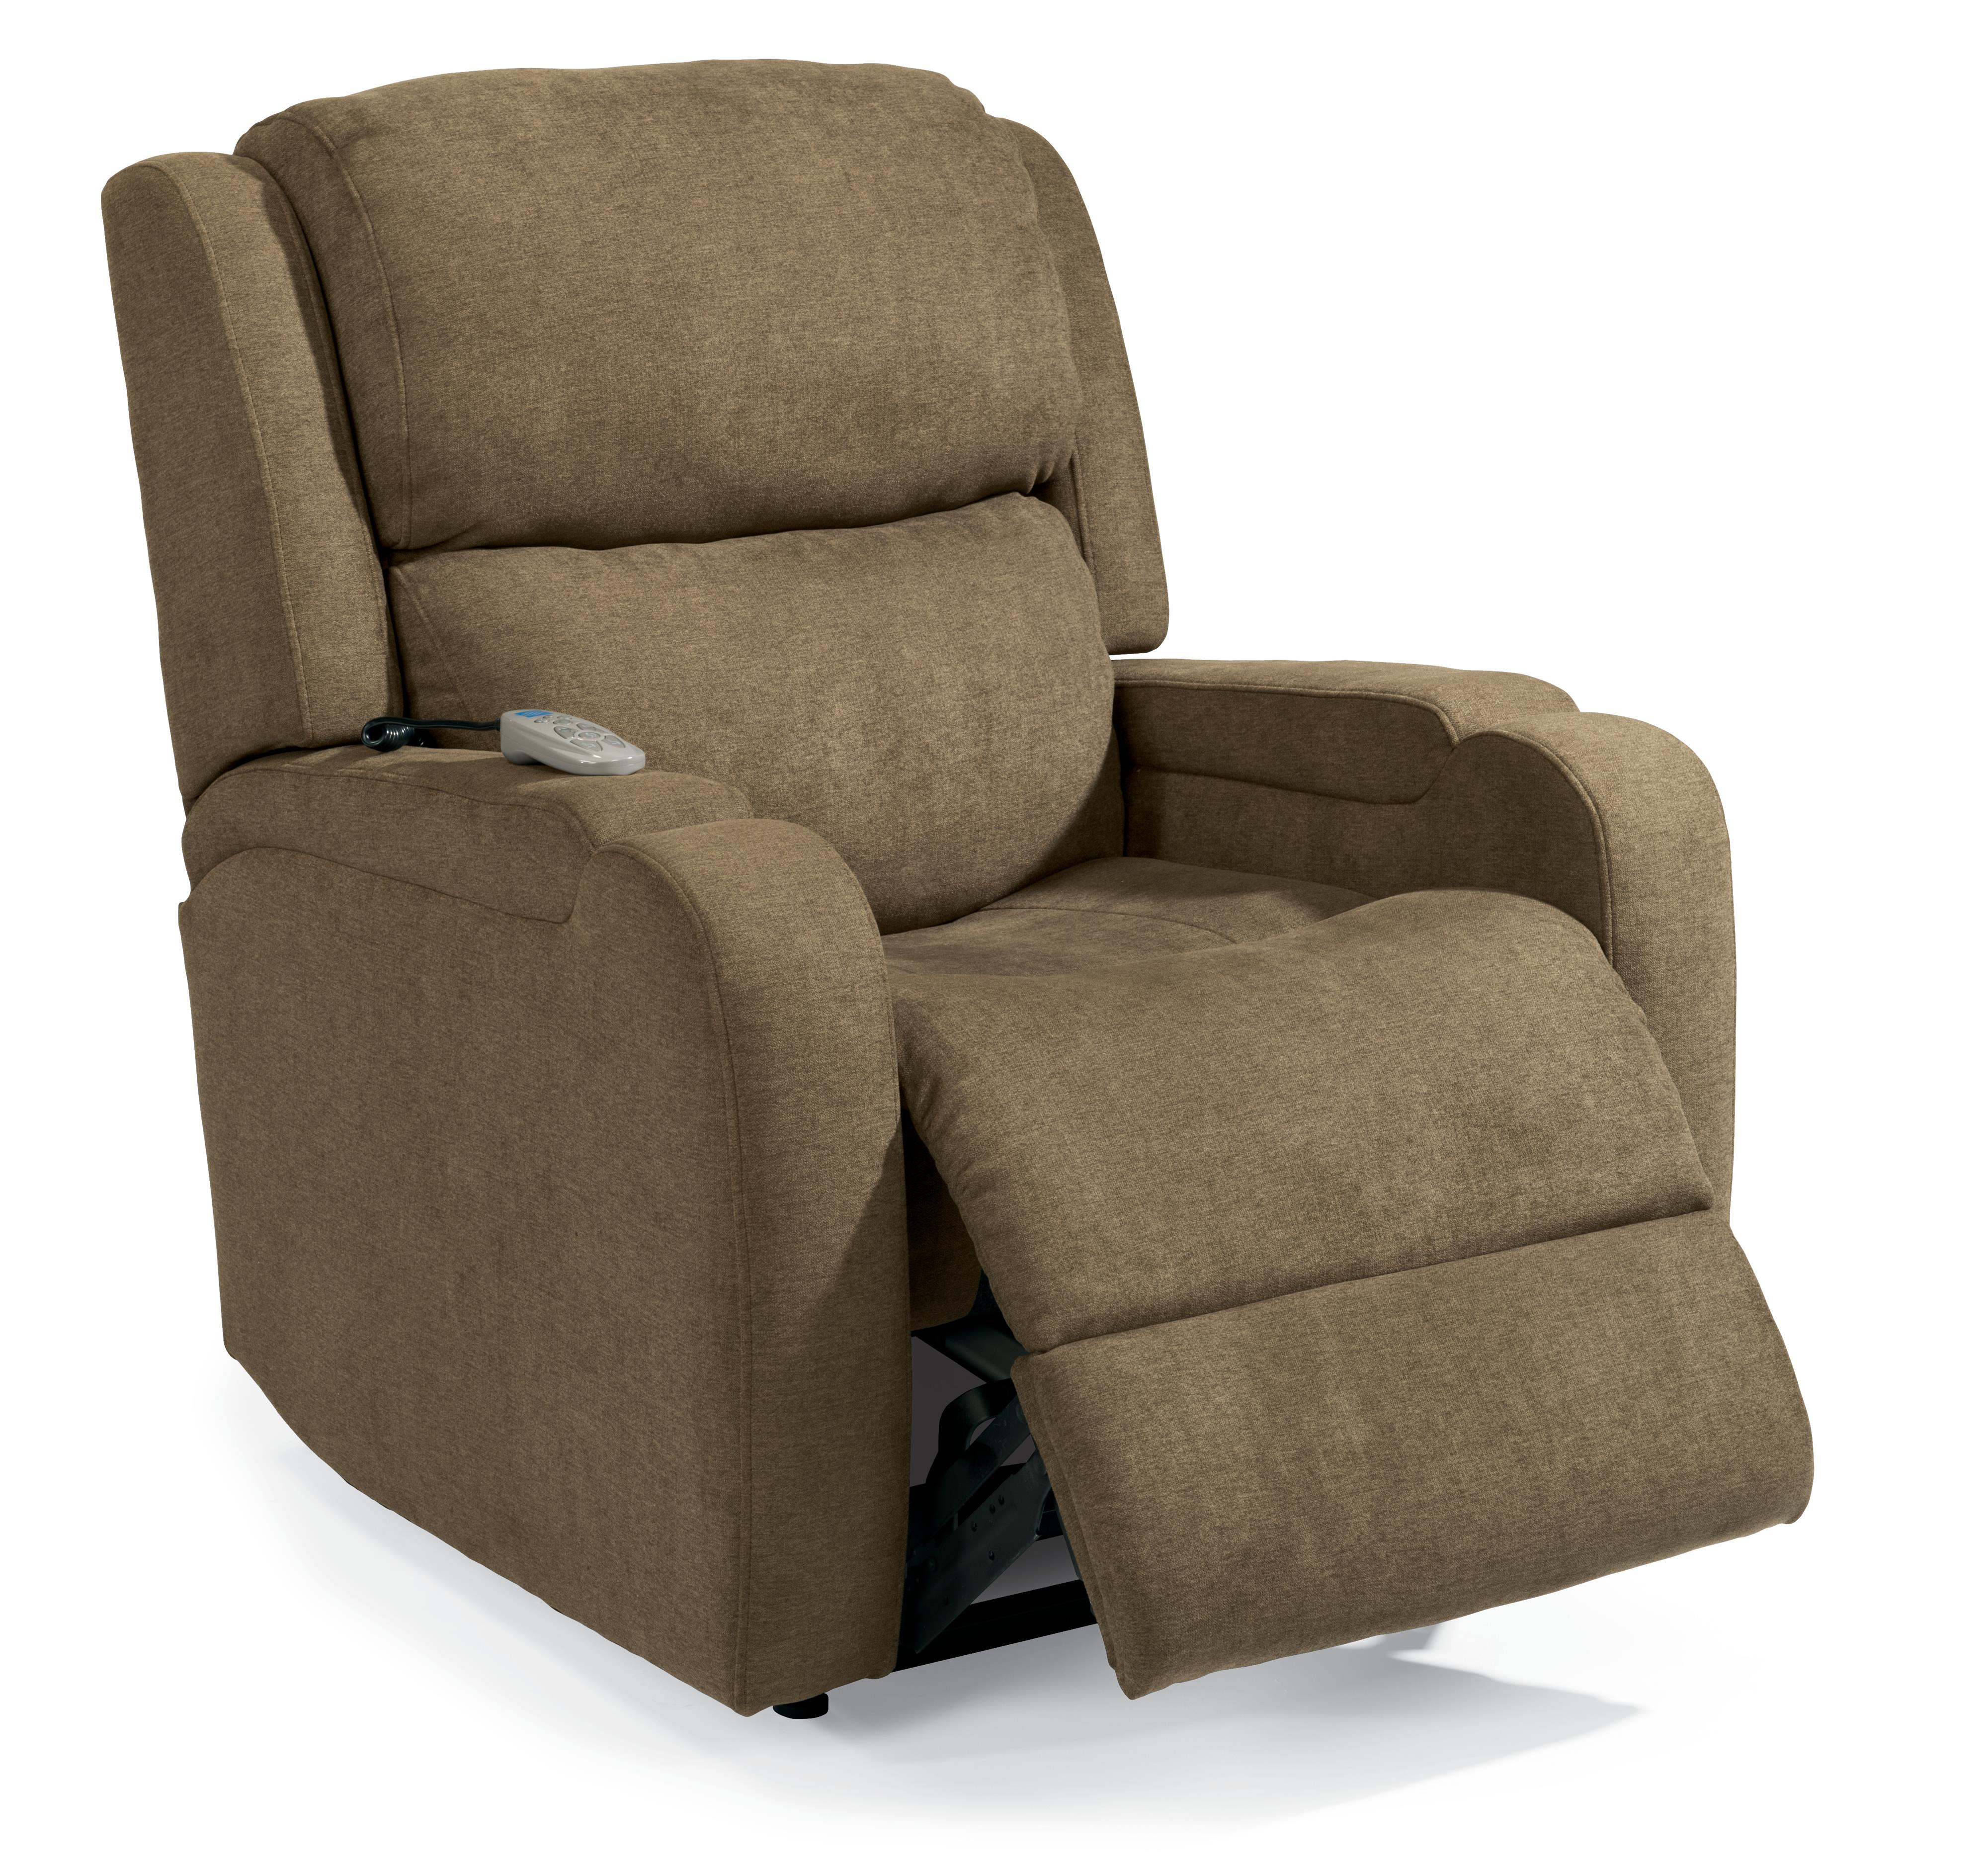 Flexsteel Latitudes Lift Chairs Melody Lift Recliner - Item Number: 1902-55-414-72